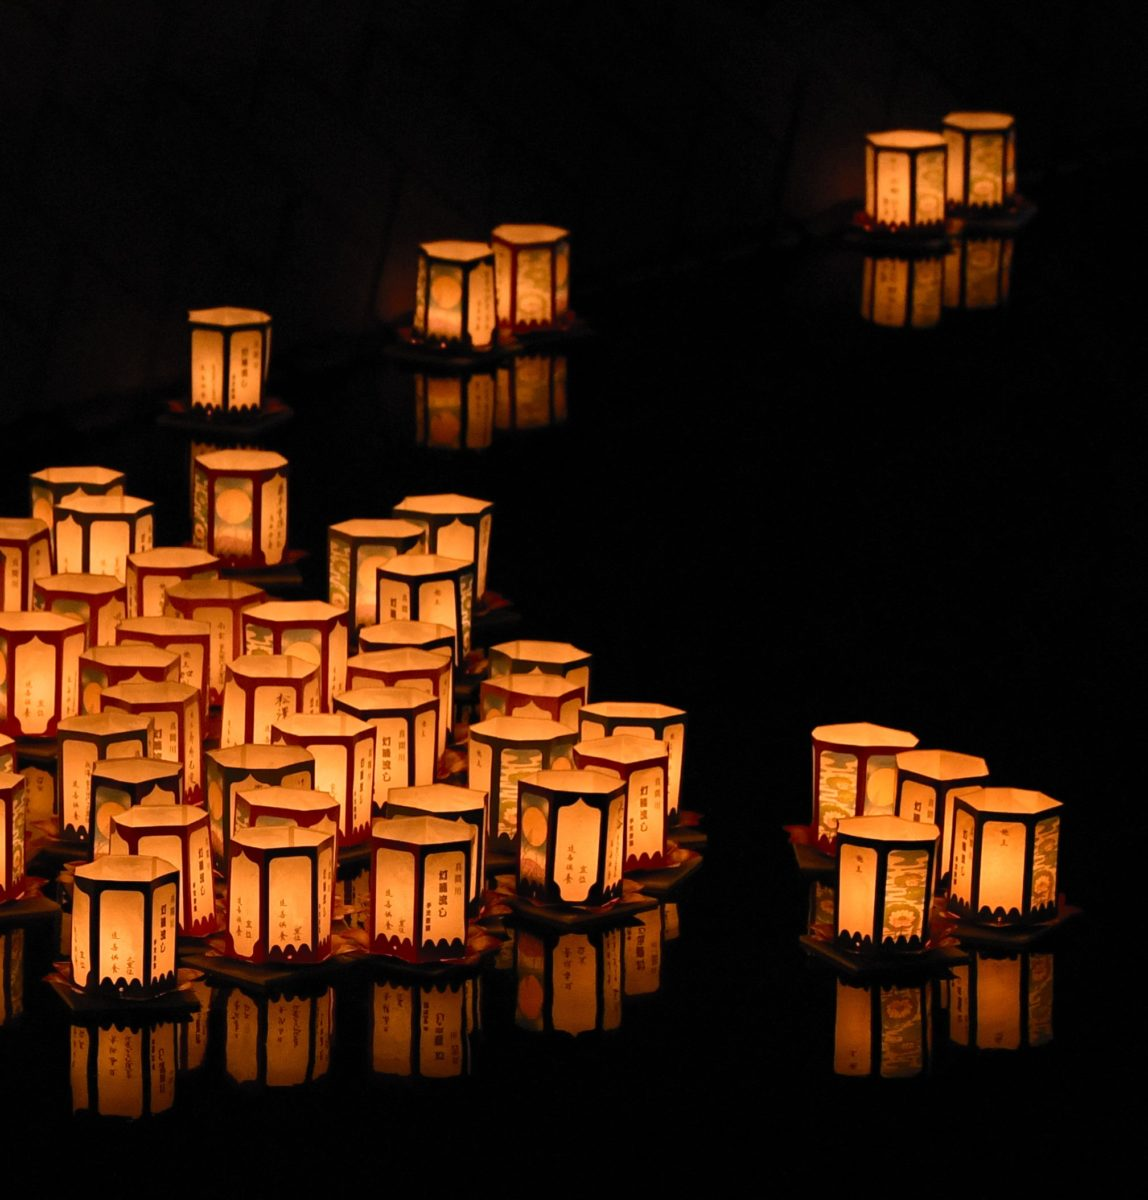 Water Lantern Festival Coming To Cincinnati: How To Save